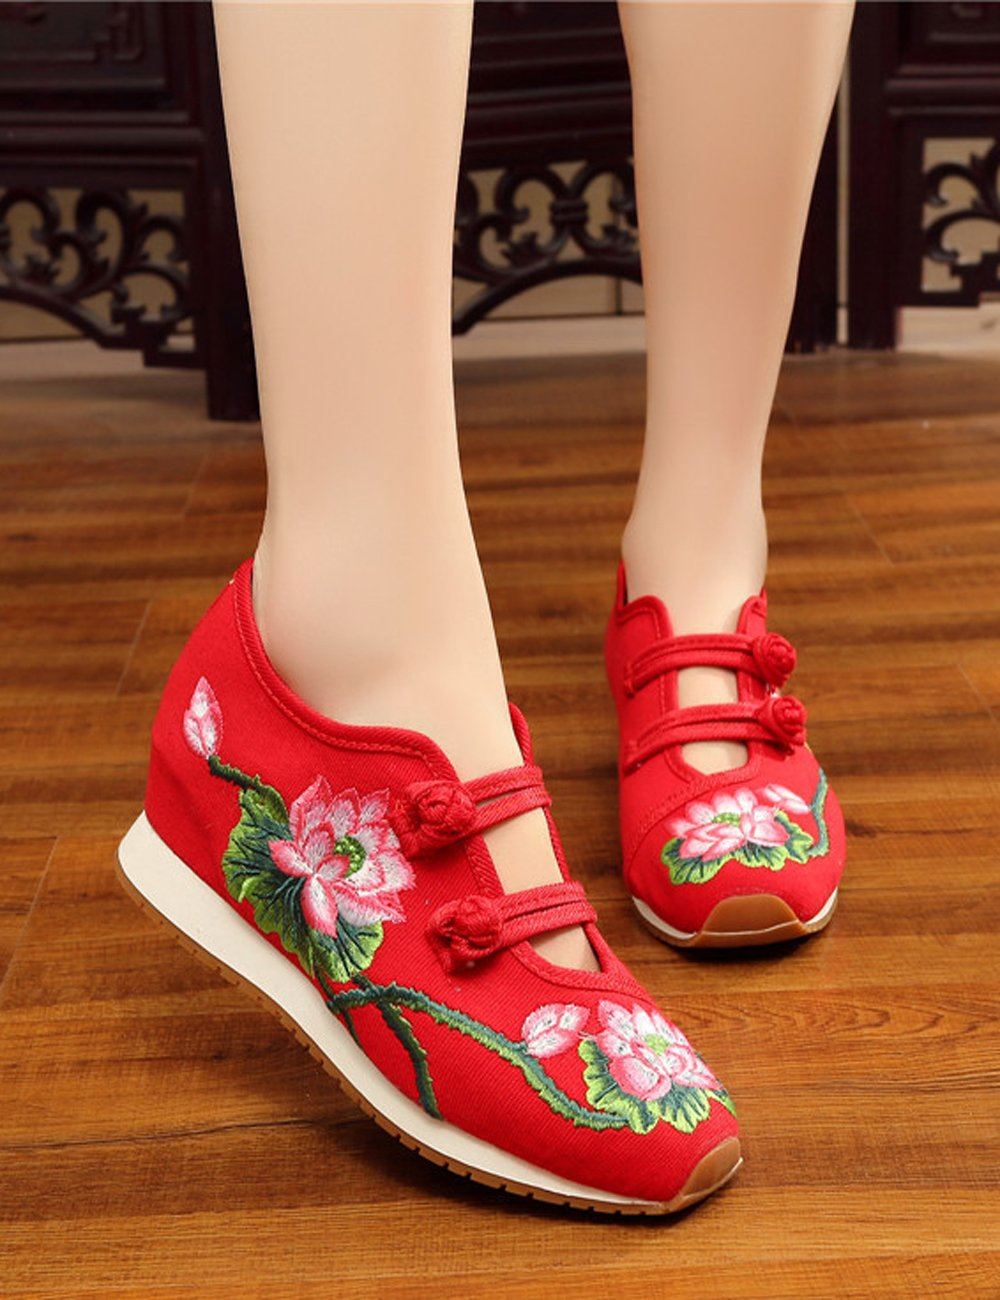 Womens Canvas Lotus Flats Embroidered Cloth Shoes Increased Flats Lotus Casual Walking Sneakers Fashion Traveling Shoes B01M23TO9L 6 B(M) US|Red c5f9ae